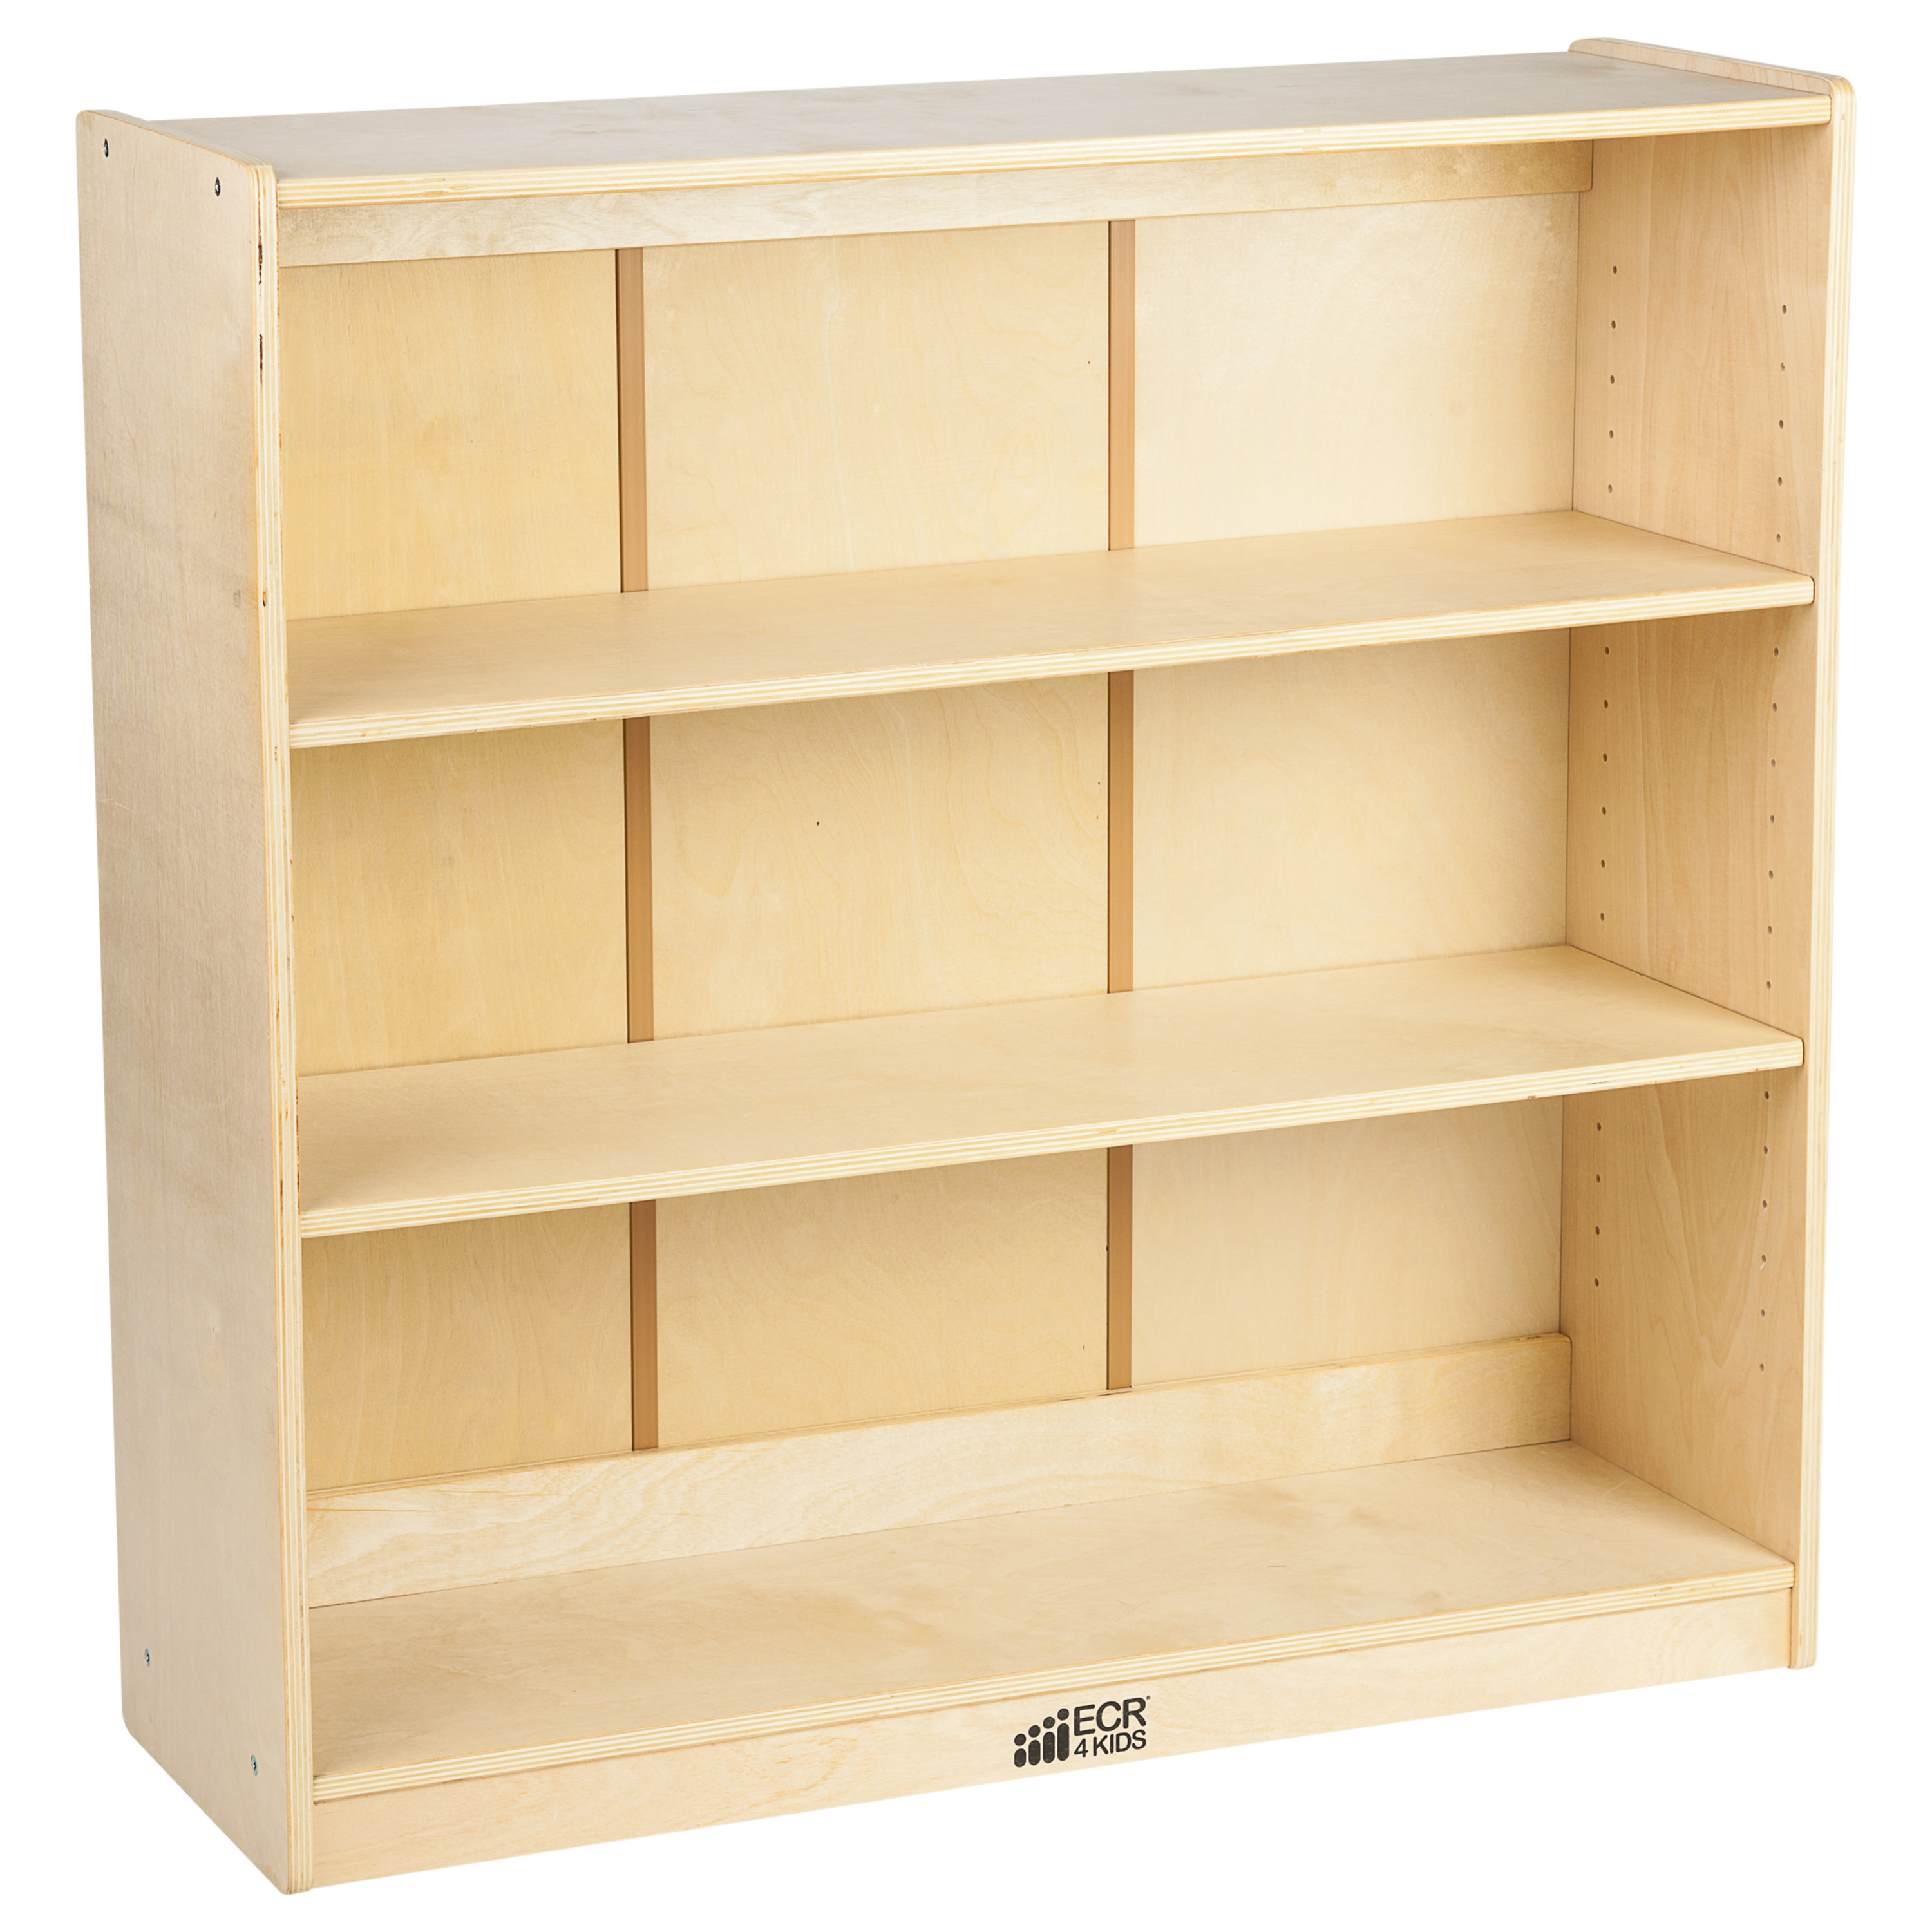 ECR4Kids Classic Birch Kids Bookshelf, 3-Tier with Adjustable Shelves